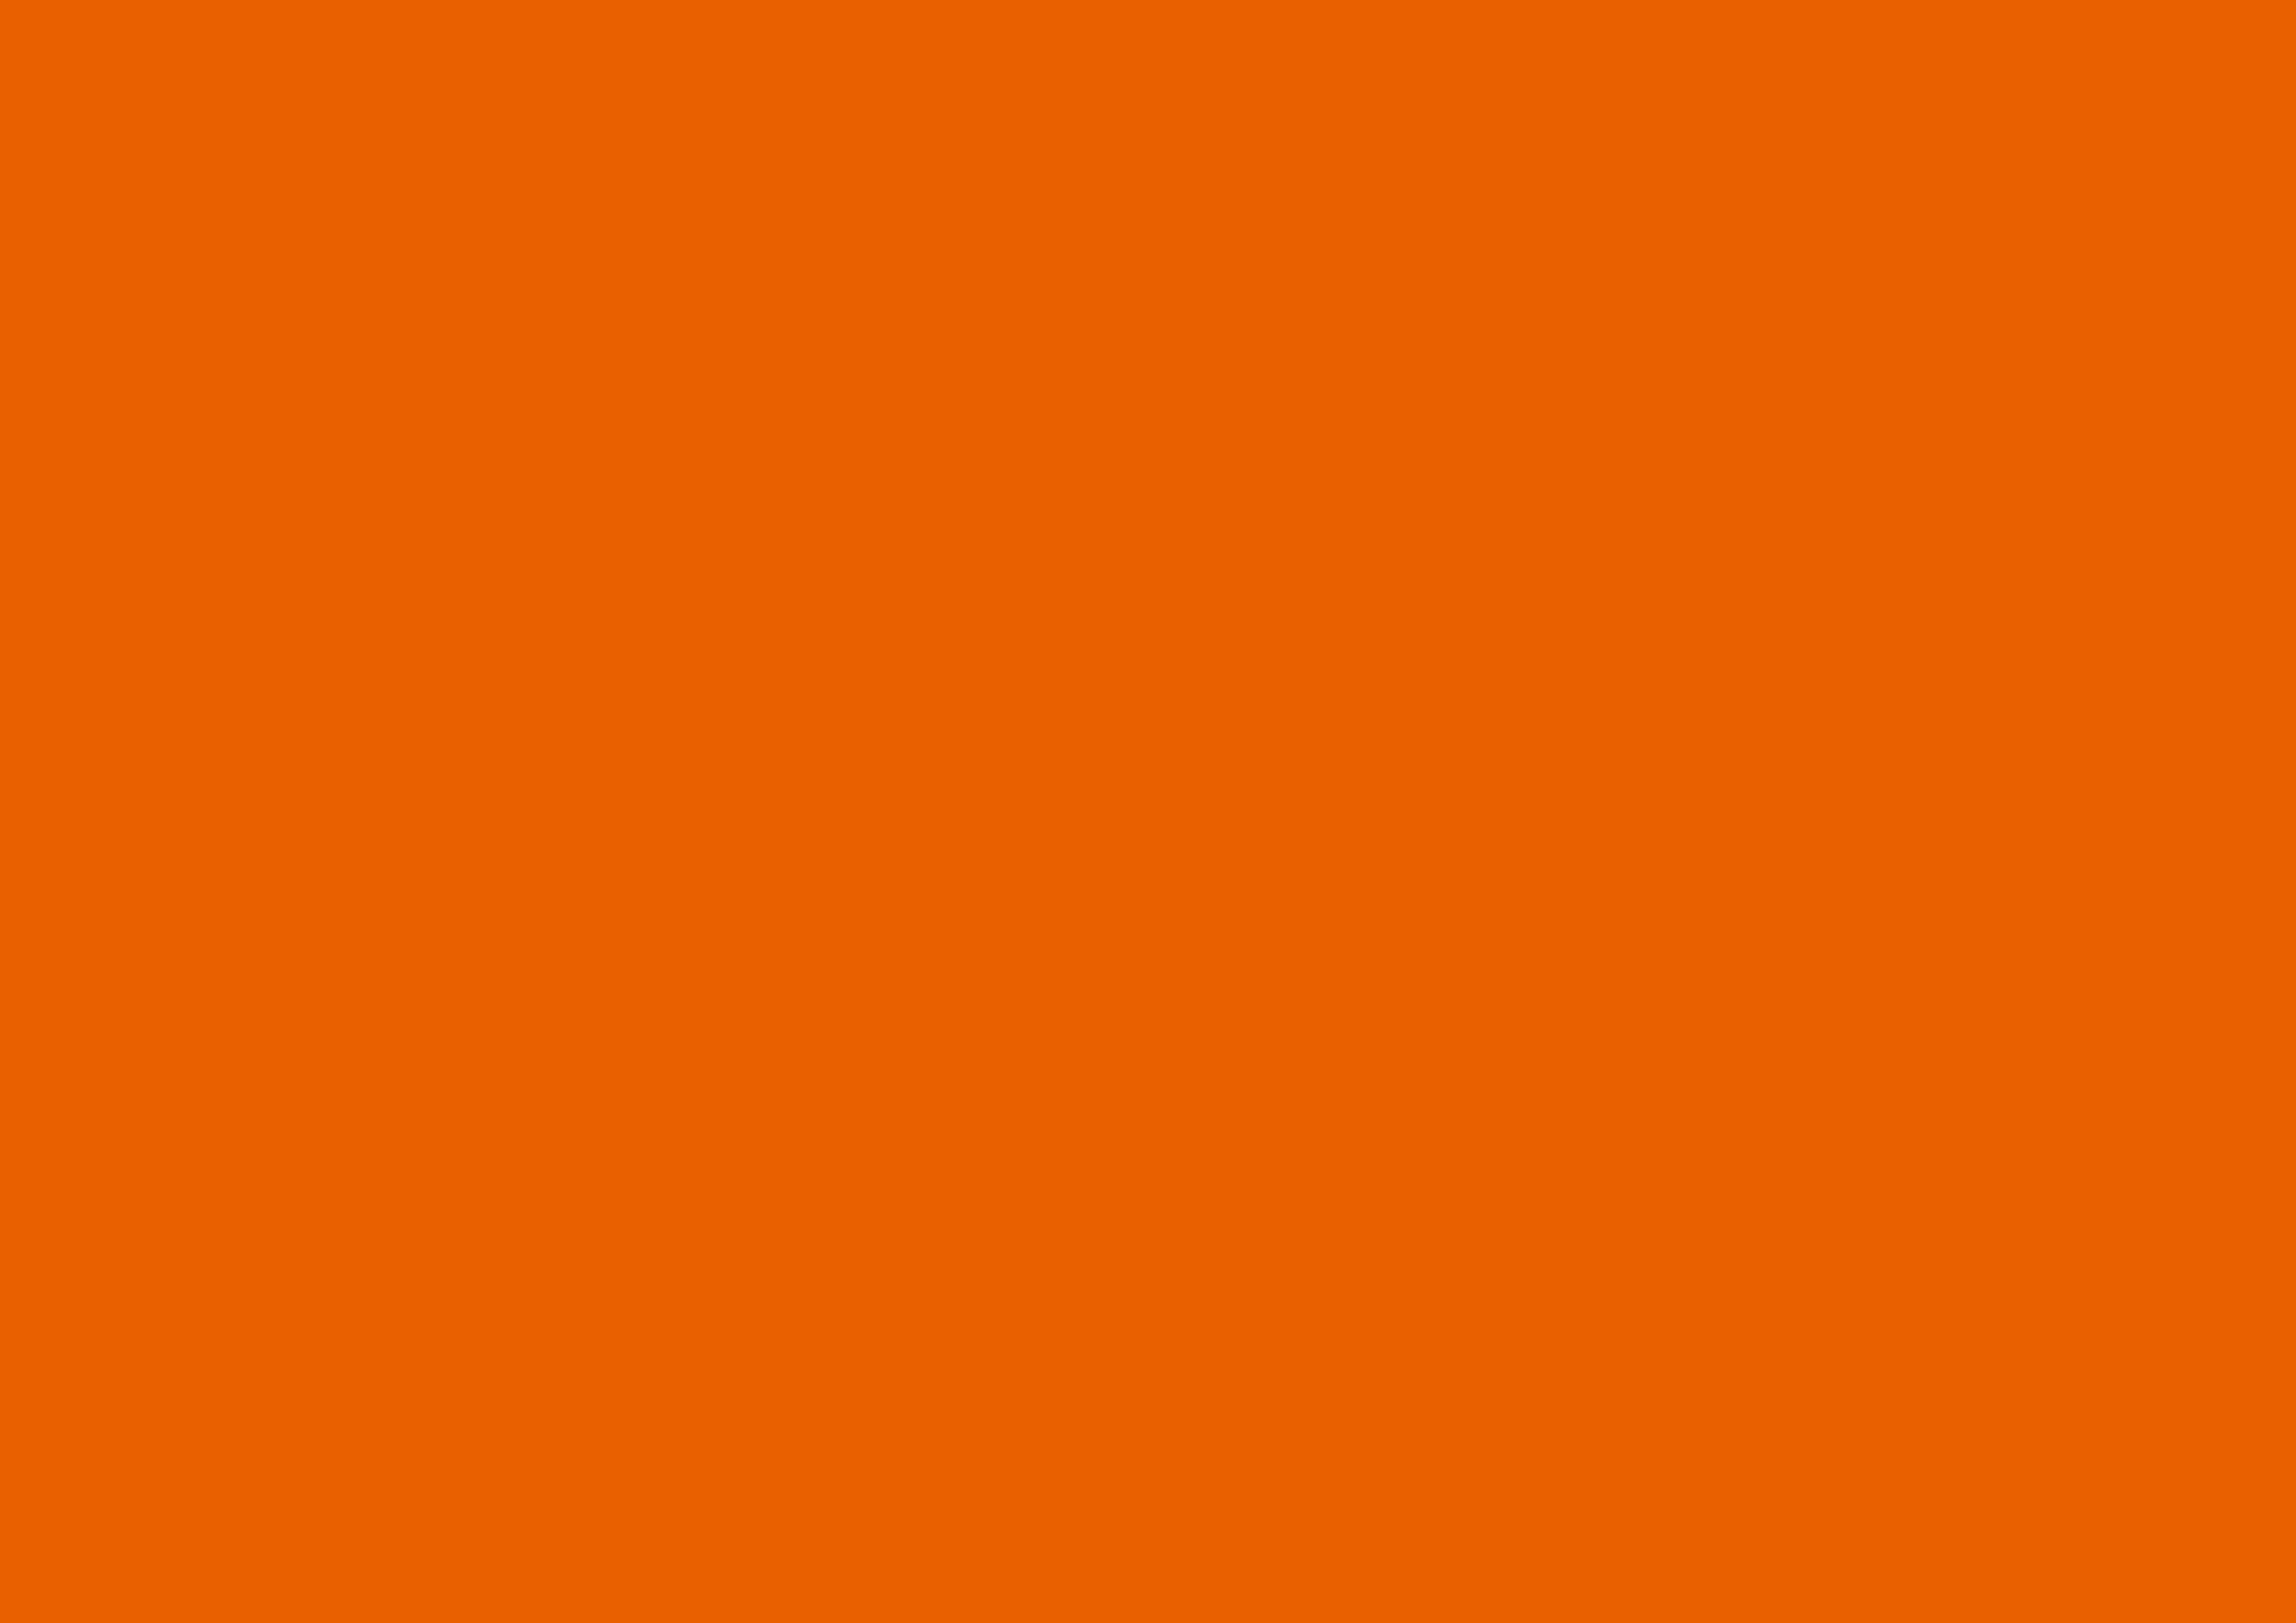 3508x2480 Spanish Orange Solid Color Background